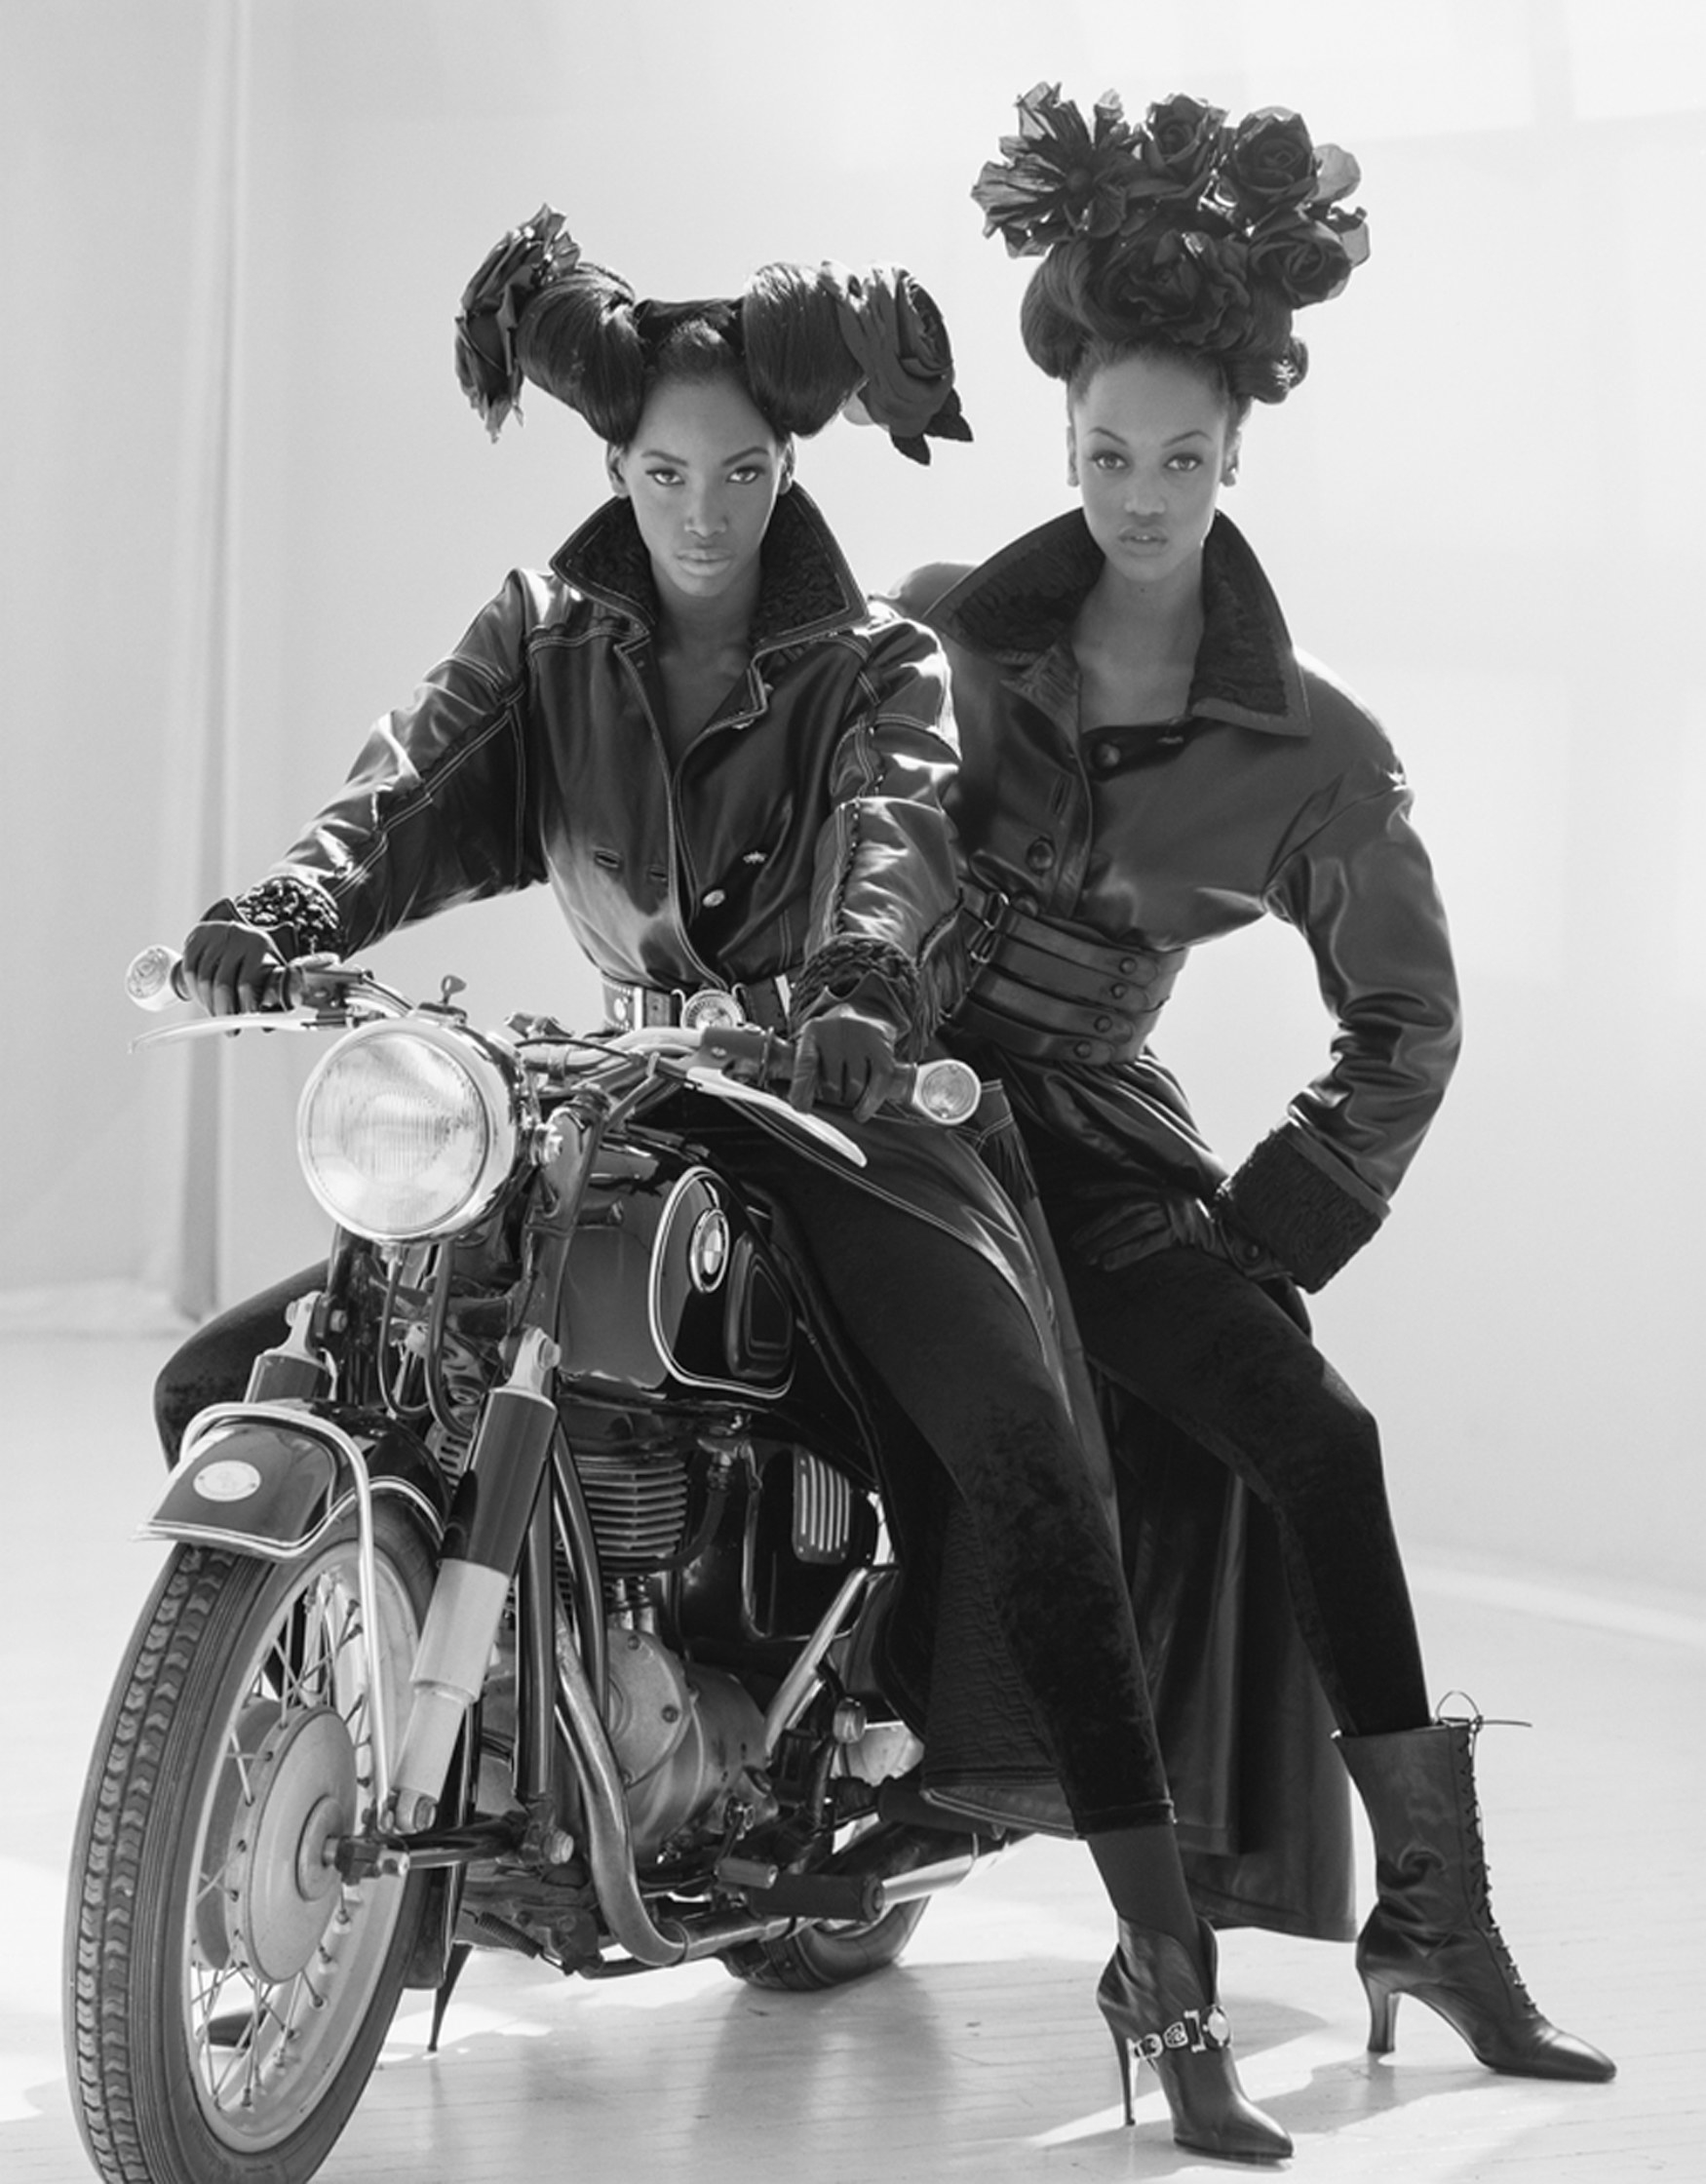 Two women in leather on a motorcycle in a studio, looking at the camera